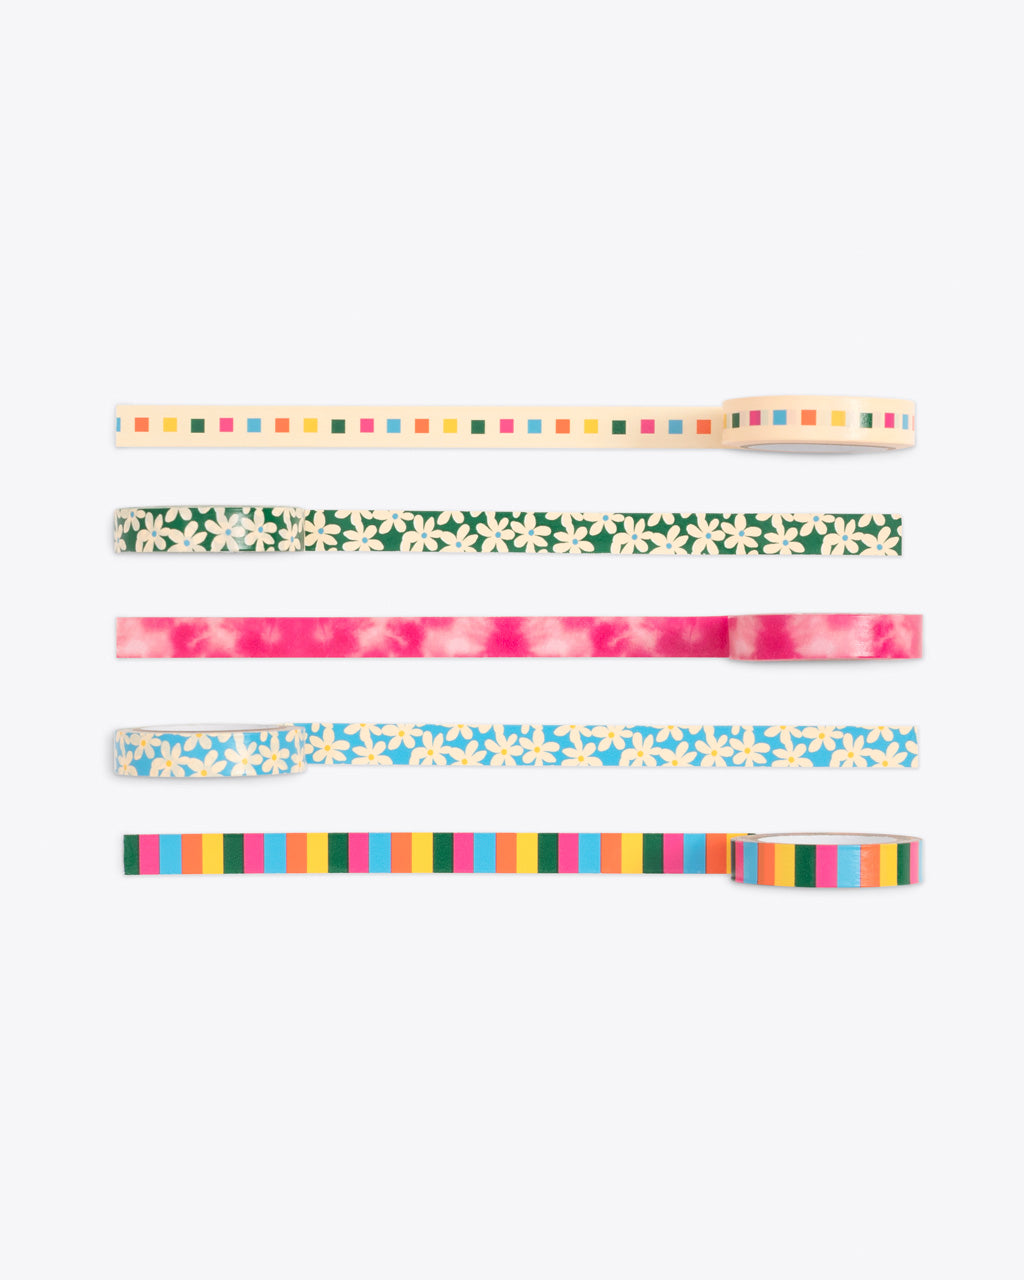 set of 5 multi pattern paper tape rolled out to show pattern detail